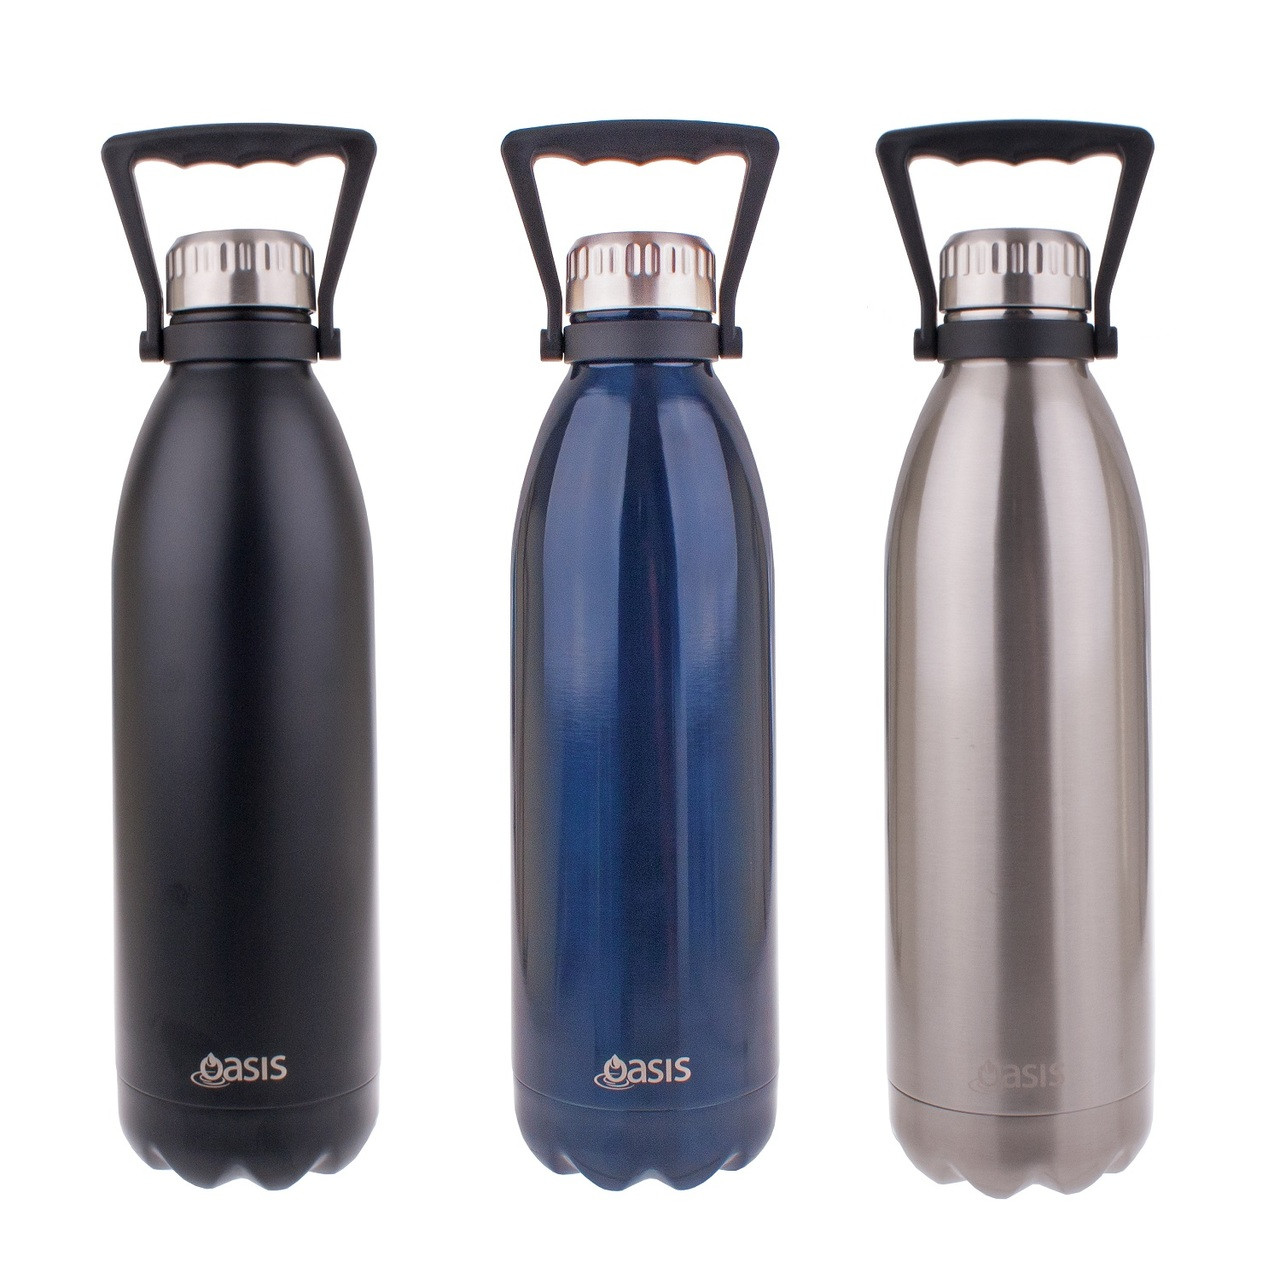 Oasis Insulated Stainless Steel Drink Bottle 1.5L. Loading zoom 33d5f98bc4b8